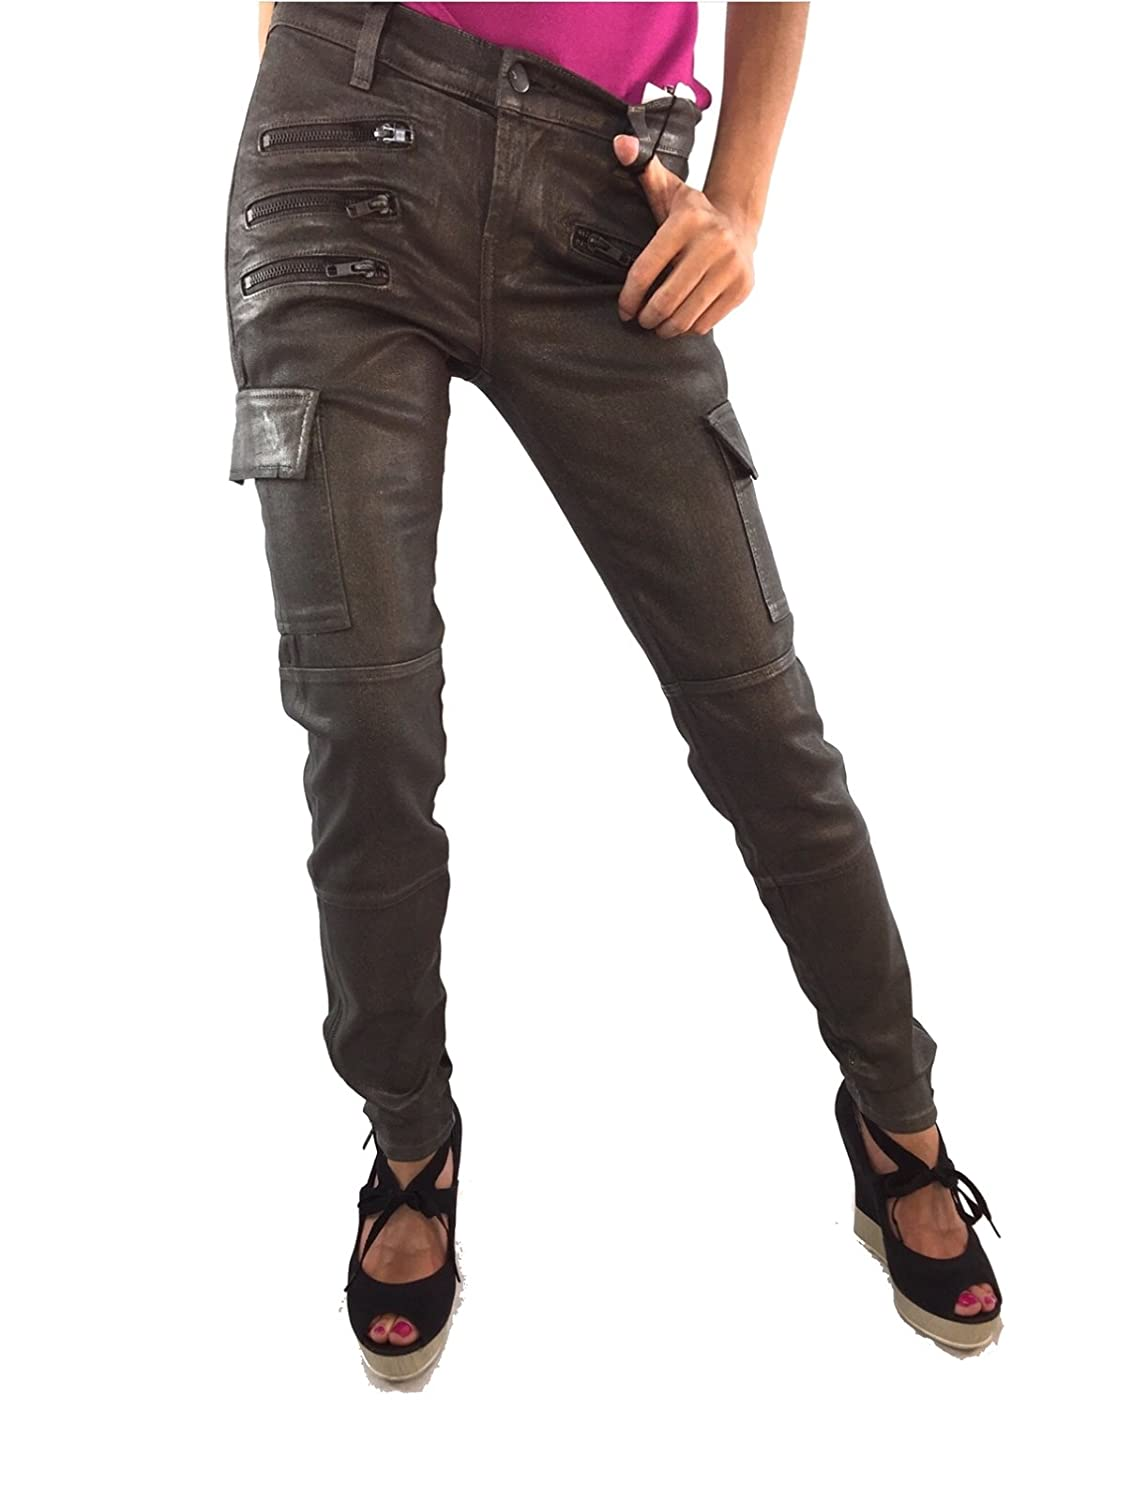 J Brand Women's The Brix Skinny Zip Cargo Coated Jeans